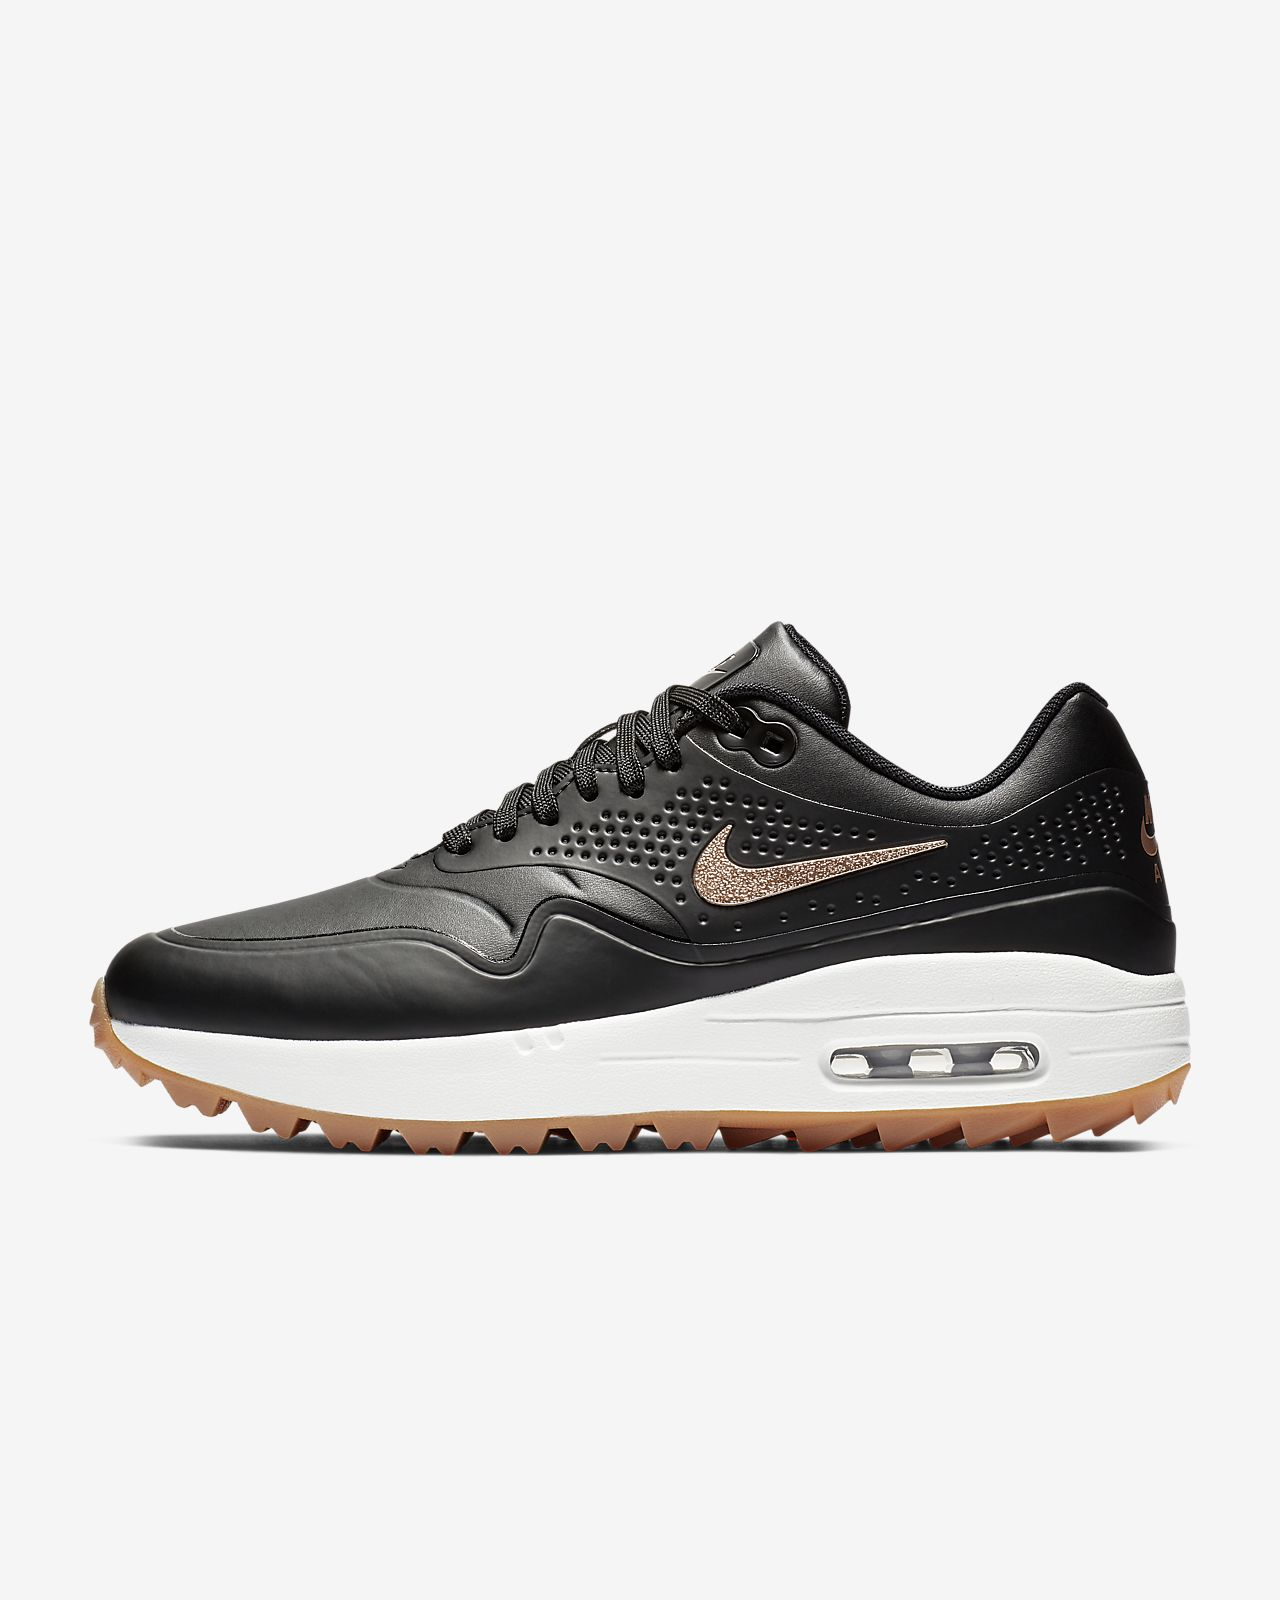 new style 9226a 898ea ... Chaussure de golf Nike Air Max 1 G pour Femme